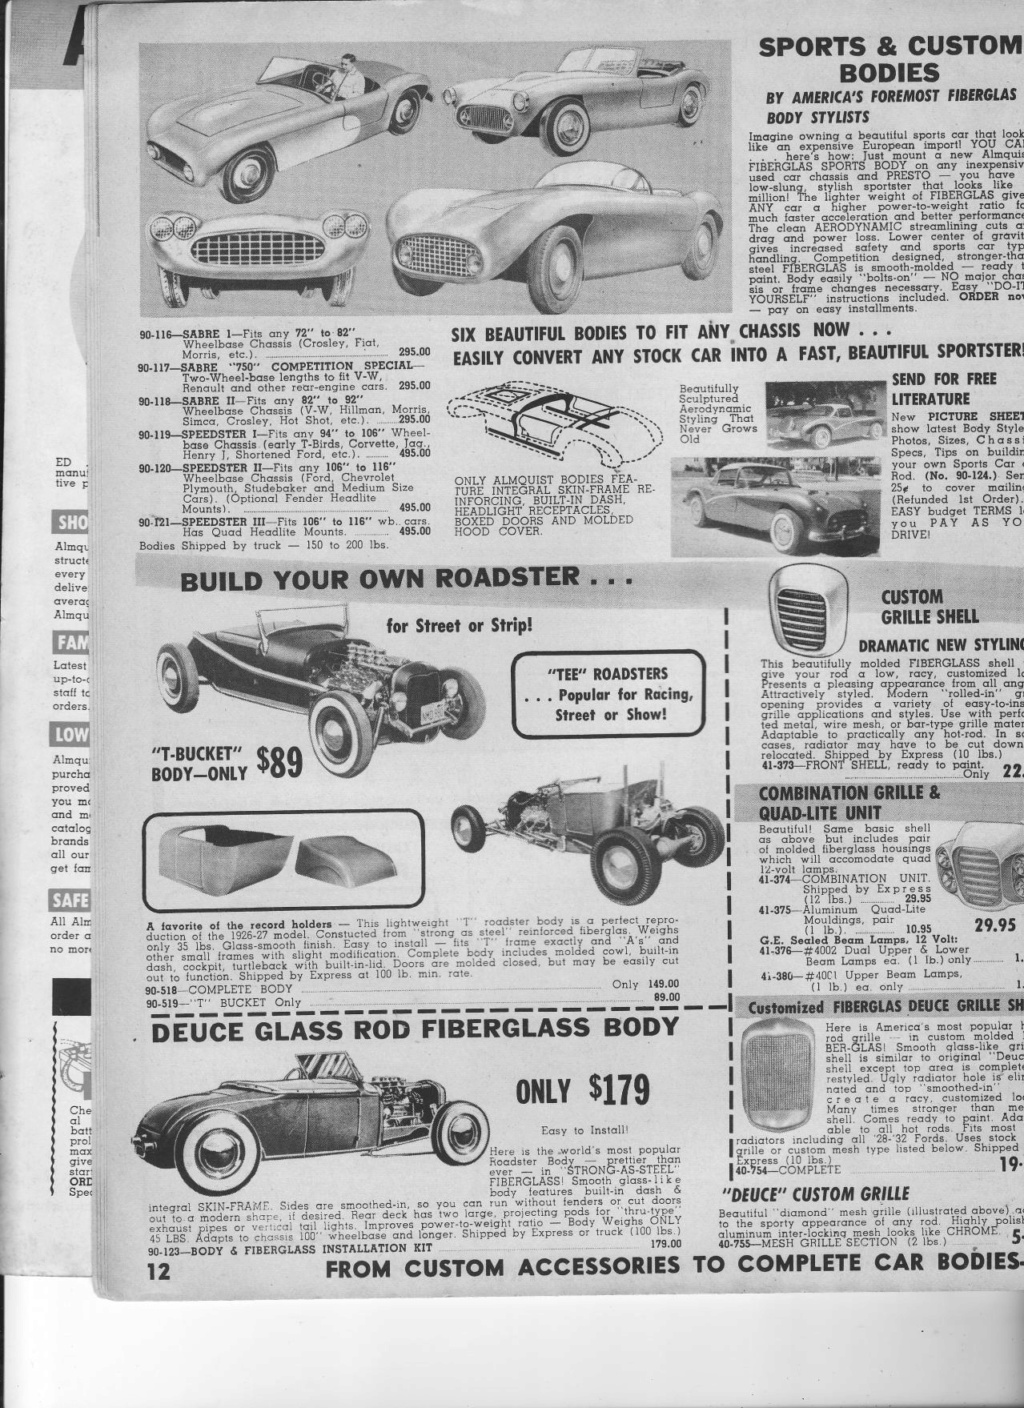 Almquist catalog, Speed, Mileage, Customizing, Performance - World's largest supplier of hi-performance equipement -  1963 Img_0012